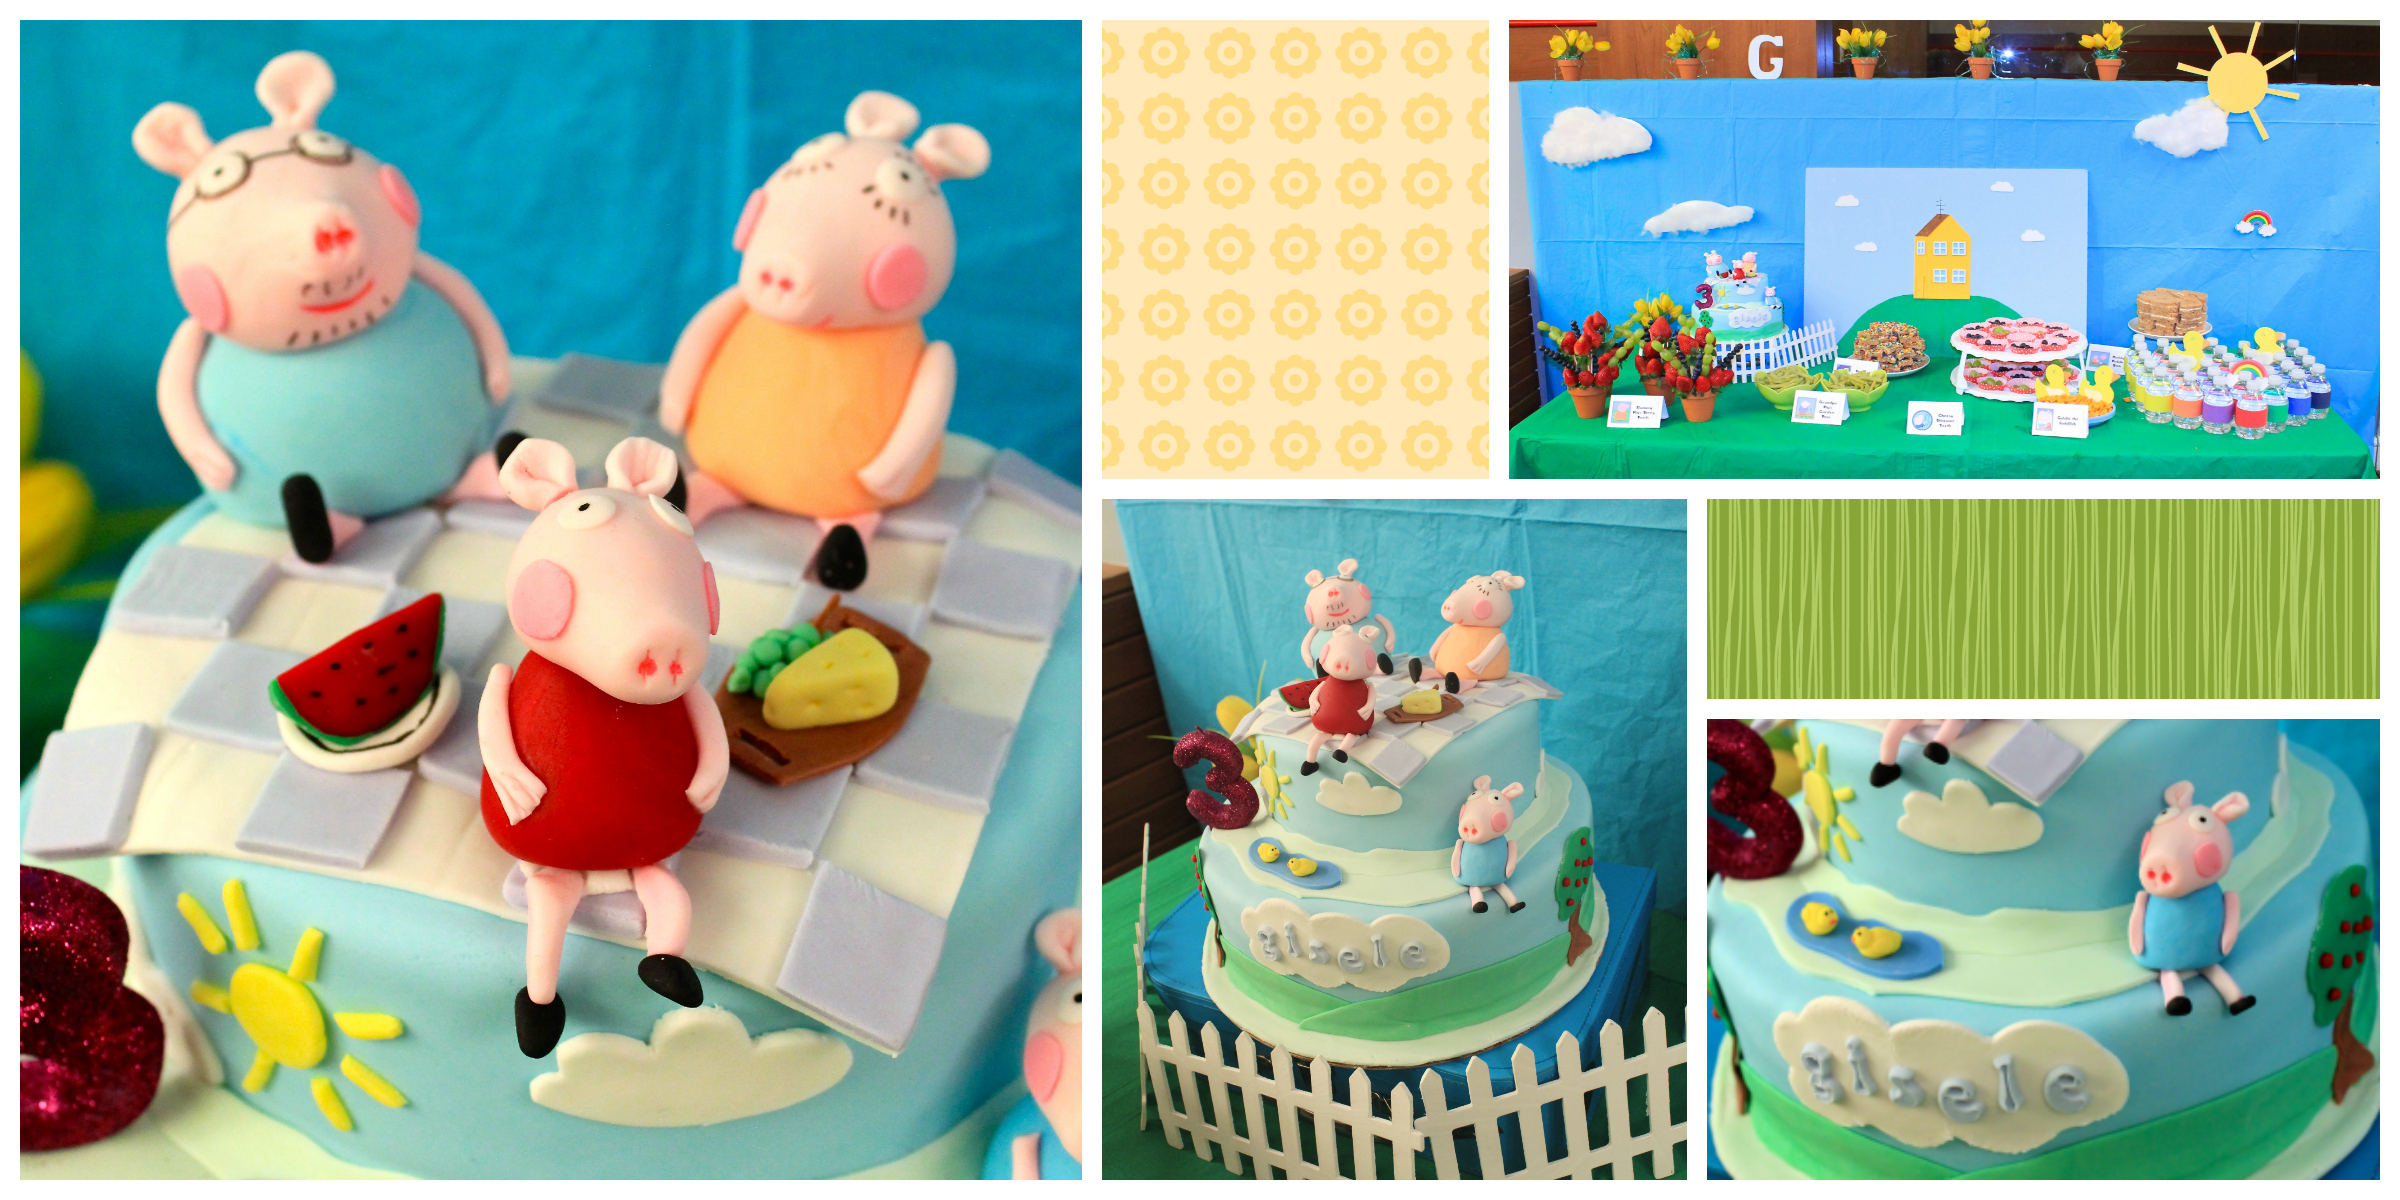 Peppa Pig Collage.jpg